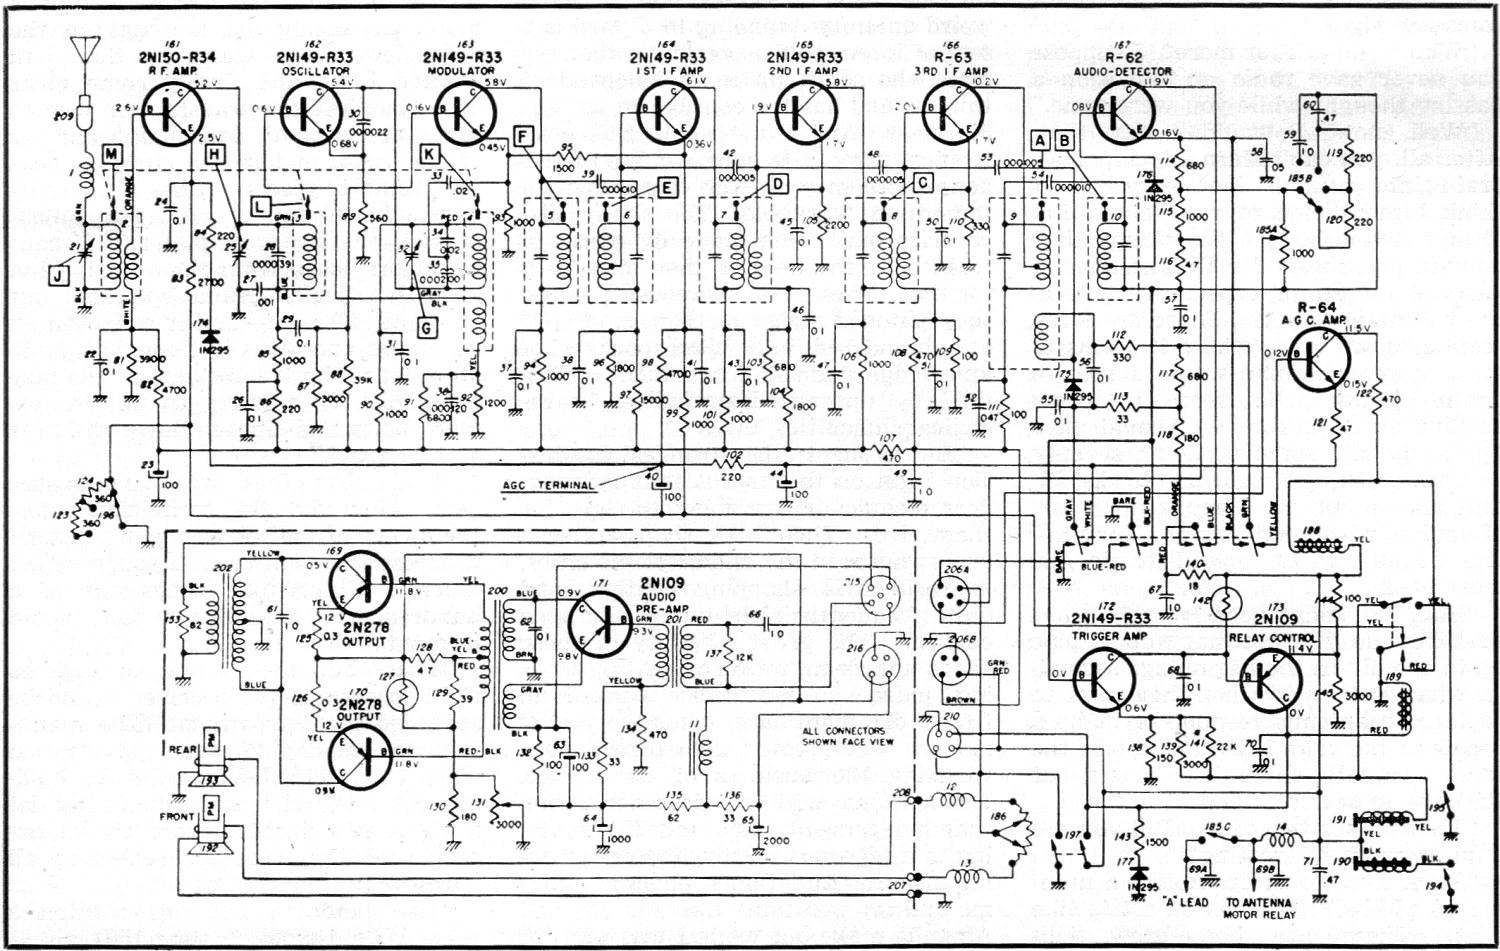 delco s all transistor auto radio august 1957 radio tv news rf cafe rh rfcafe com Transistor Amplifier Circuit Diagram Transistor Amplifier Circuit Diagram